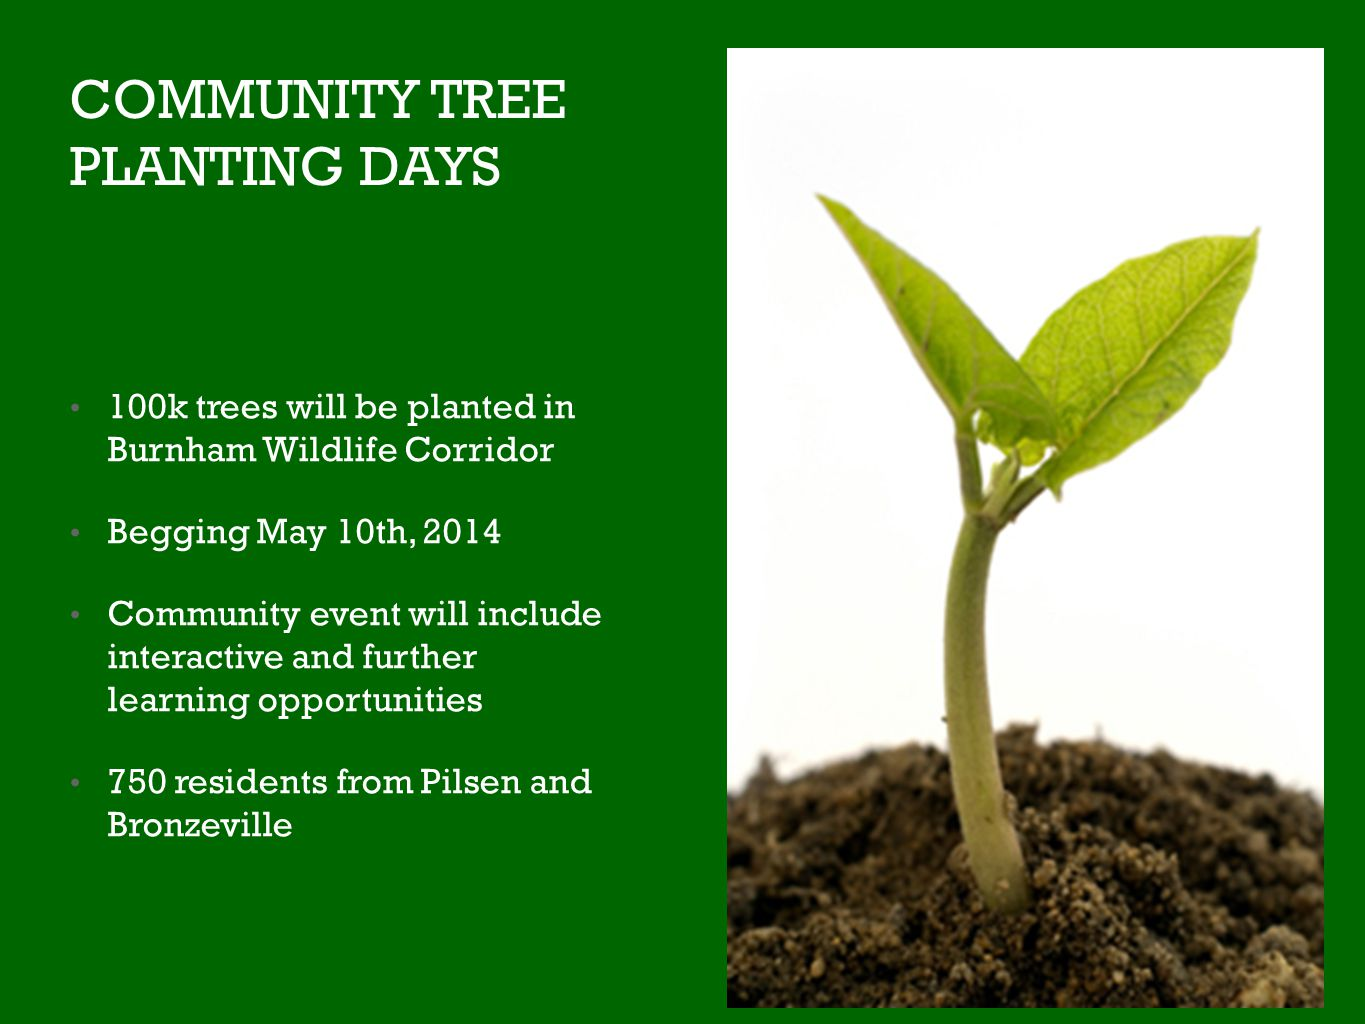 COMMUNITY TREE PLANTING DAYS 100k trees will be planted in Burnham Wildlife Corridor Begging May 10th, 2014 Community event will include interactive and further learning opportunities 750 residents from Pilsen and Bronzeville